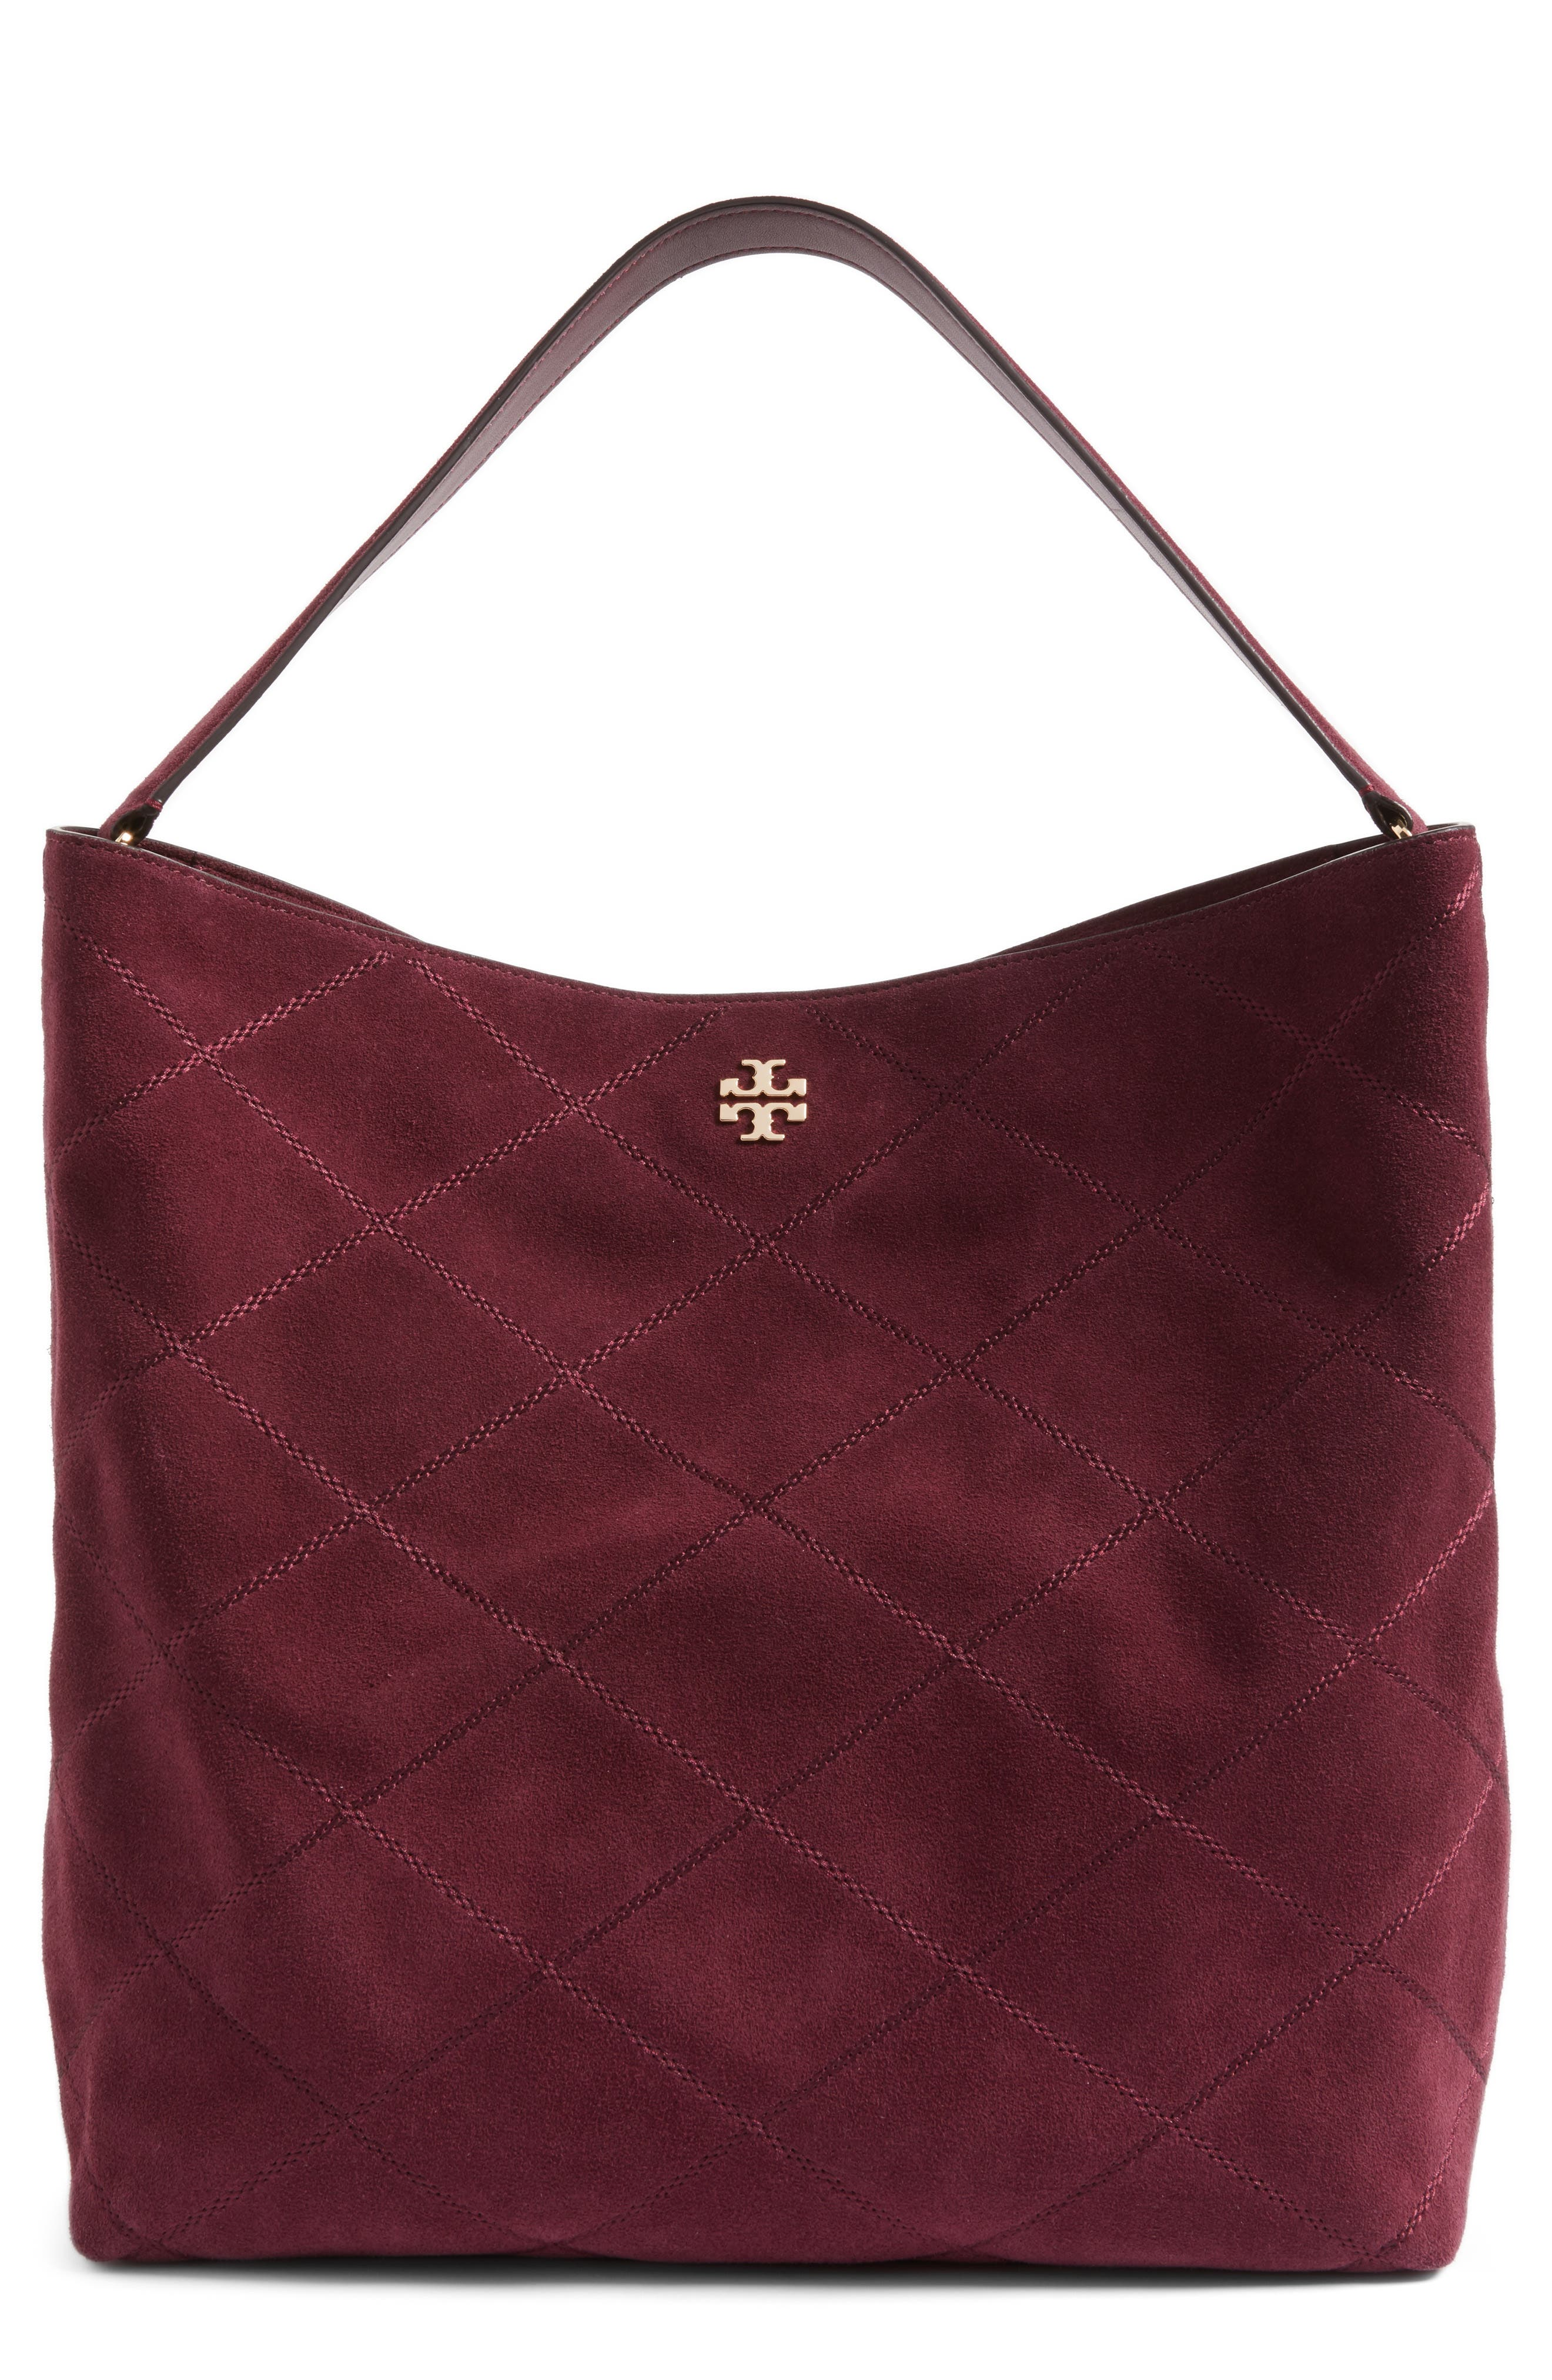 TORY BURCH Frida Stitched Suede Hobo